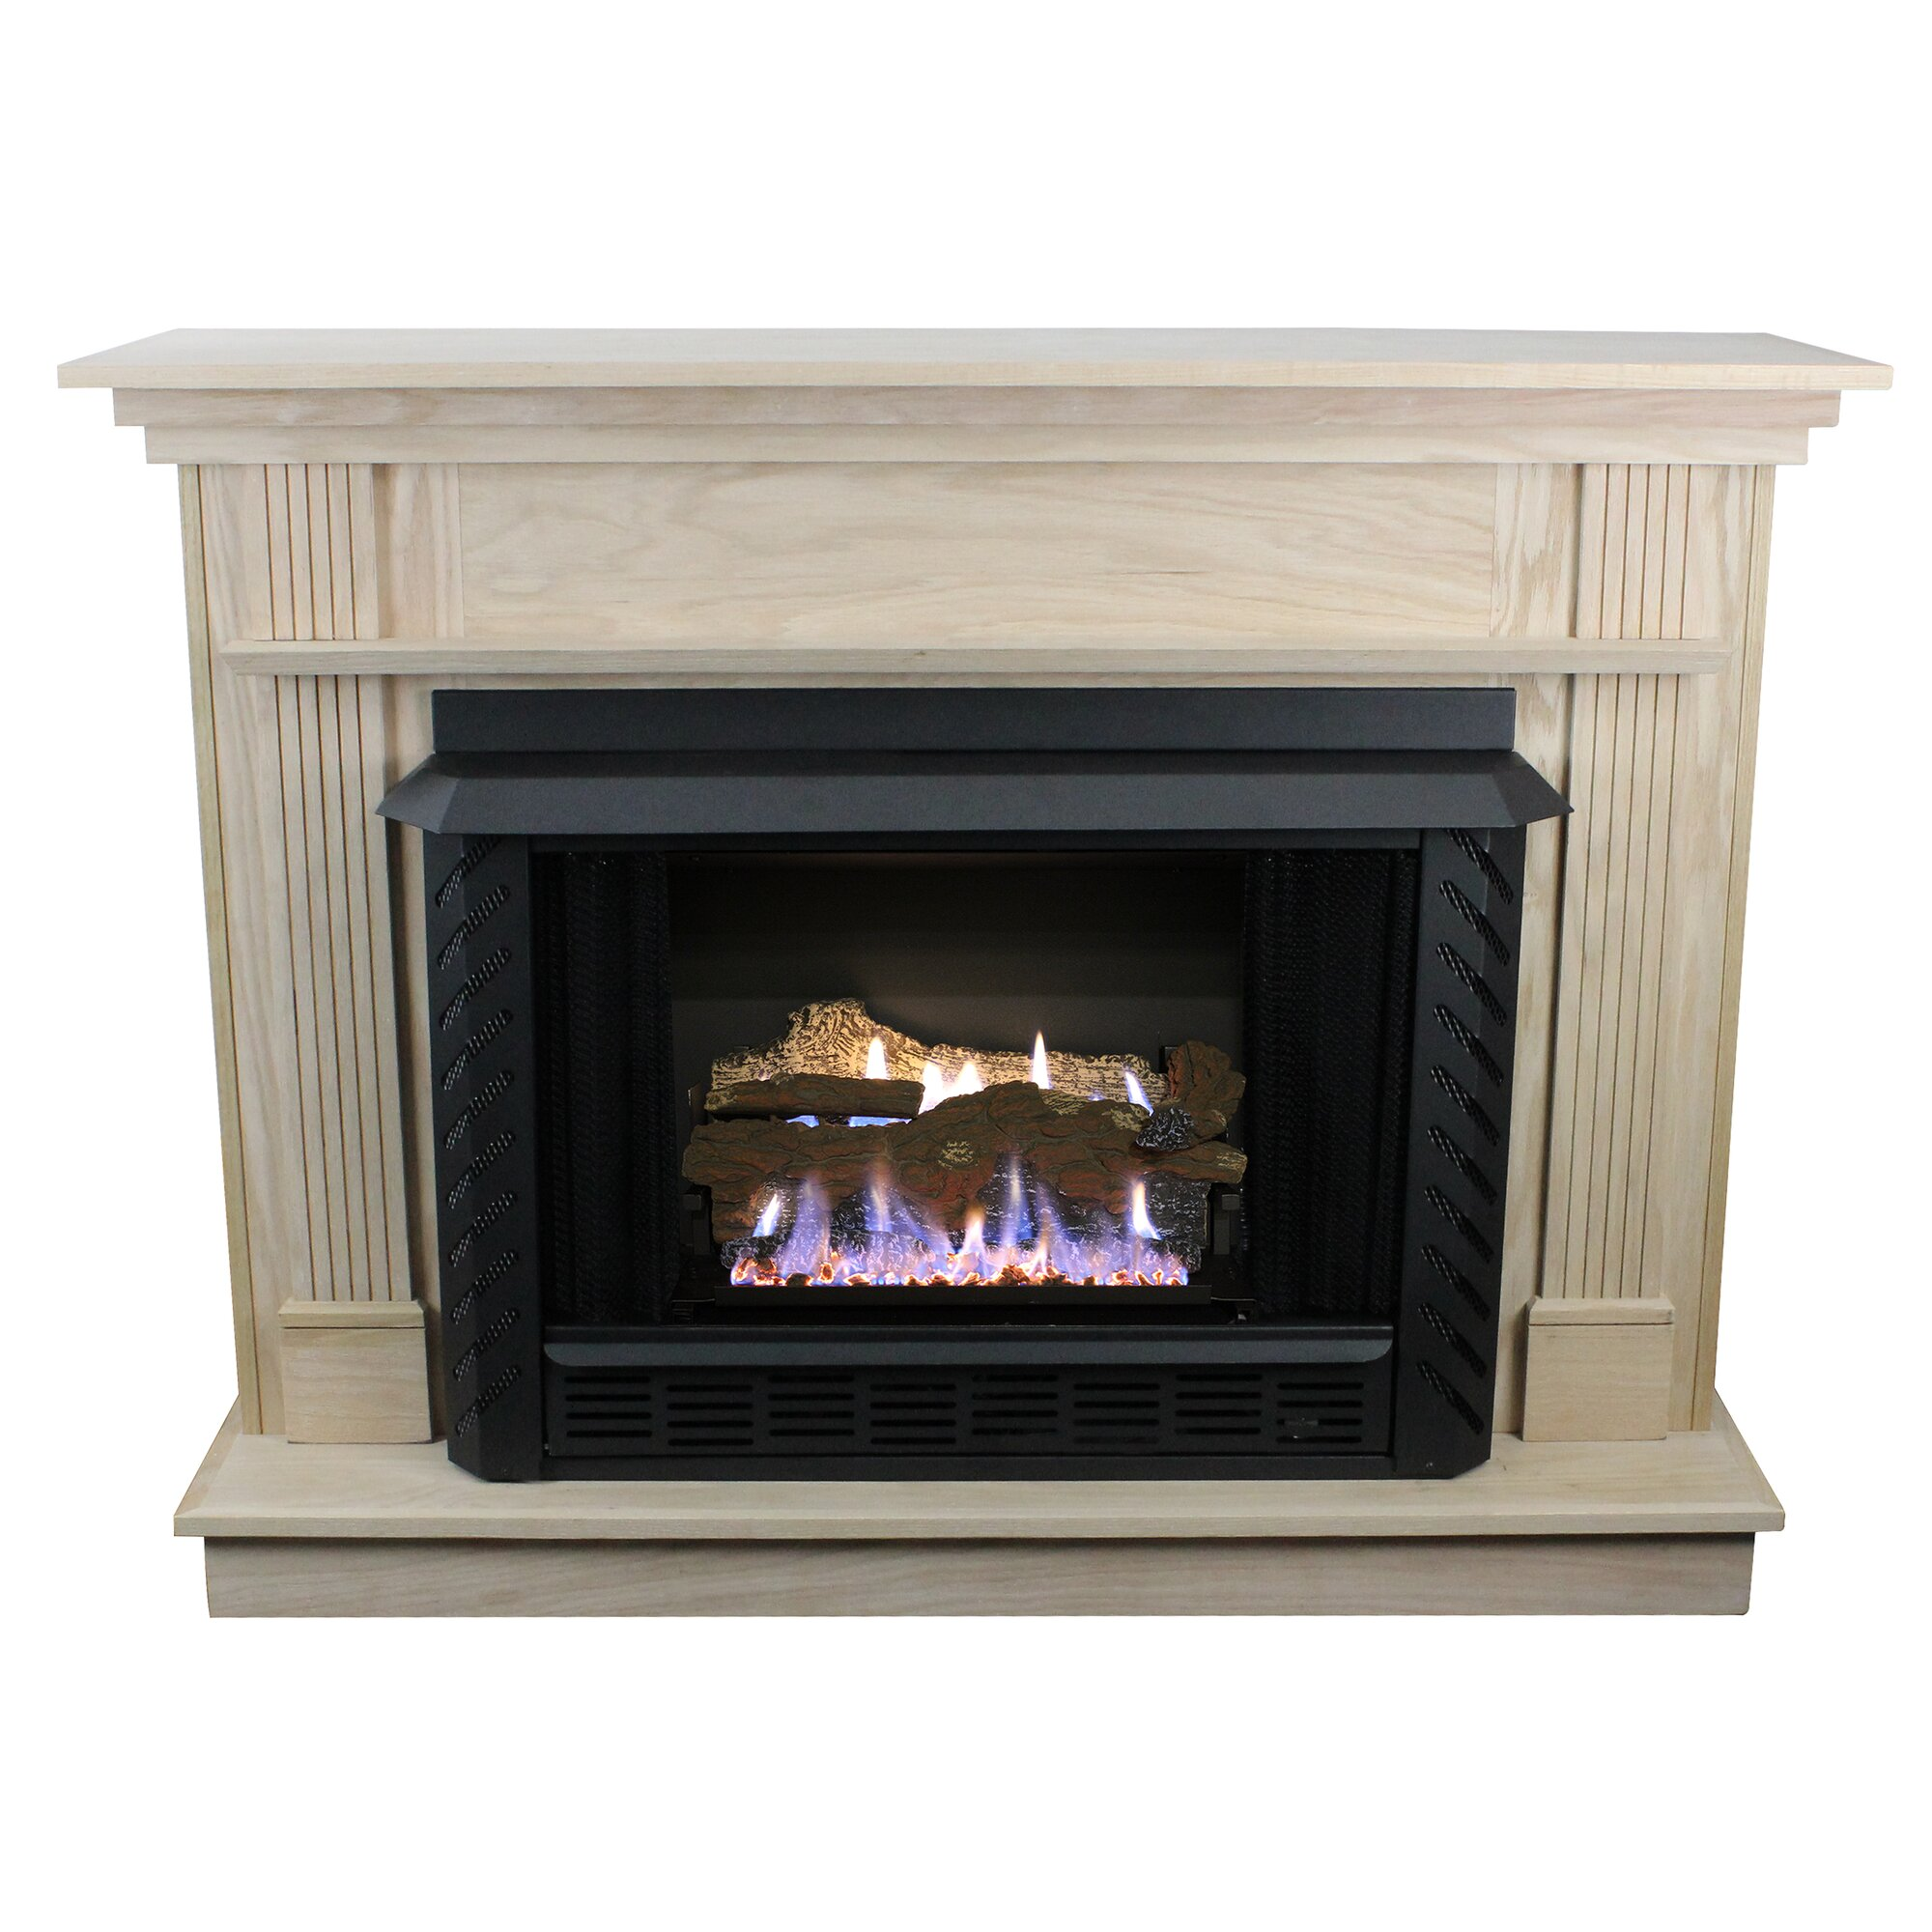 Ashley Hearth Vent Free Gas Fireplace & Reviews | Wayfair